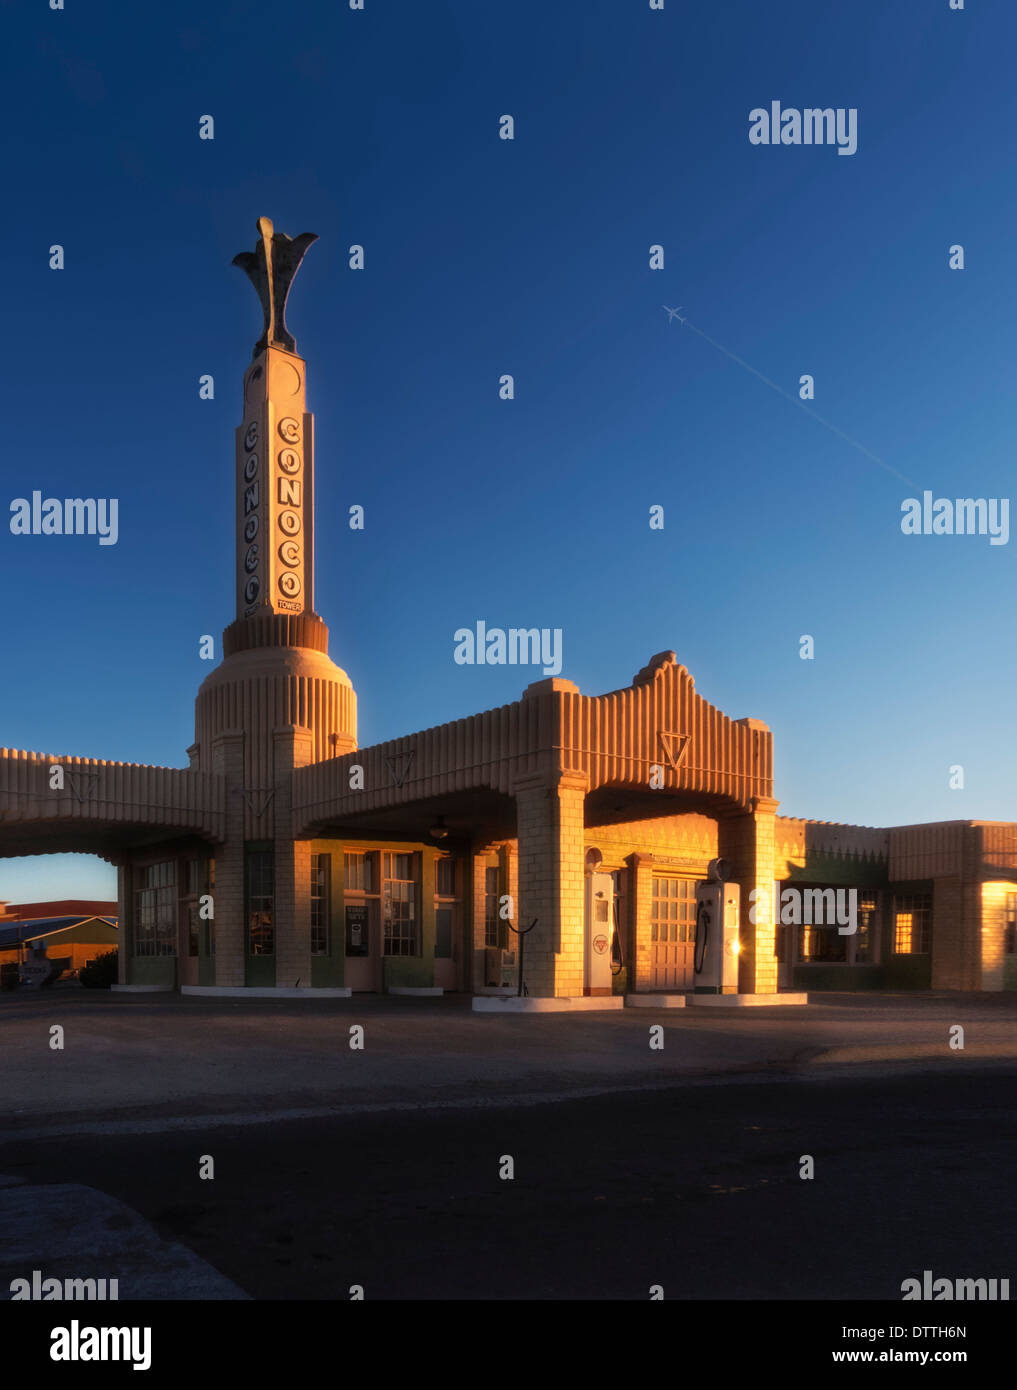 The Classic Conoco gas Station in Shamrock Oklahoma on Old Route 66 - Stock Image